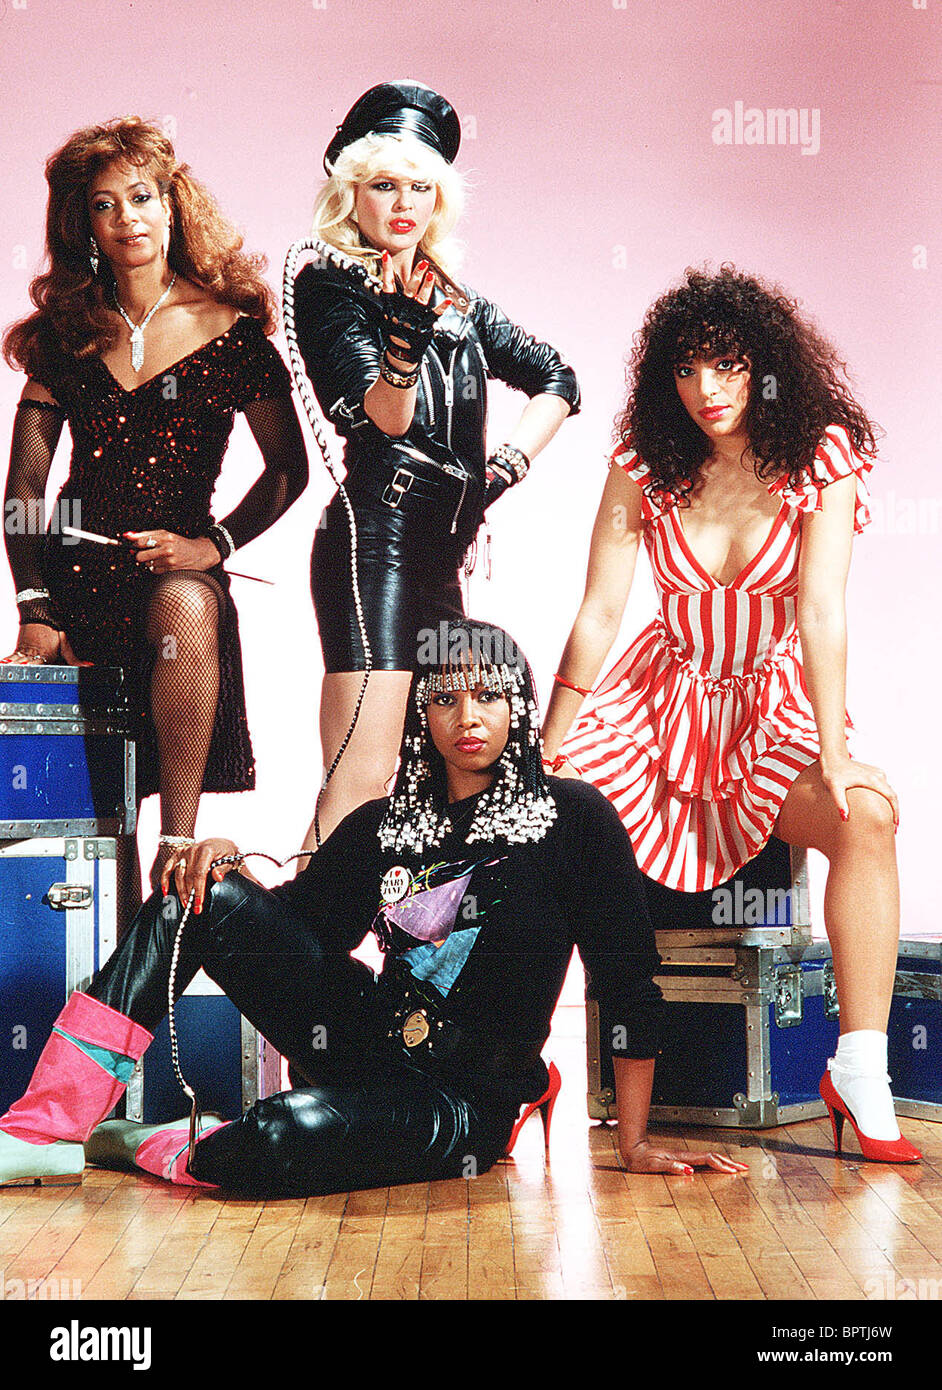 Mary Jane Girls - In My House: The Very Best Of The Mary Jane Girls